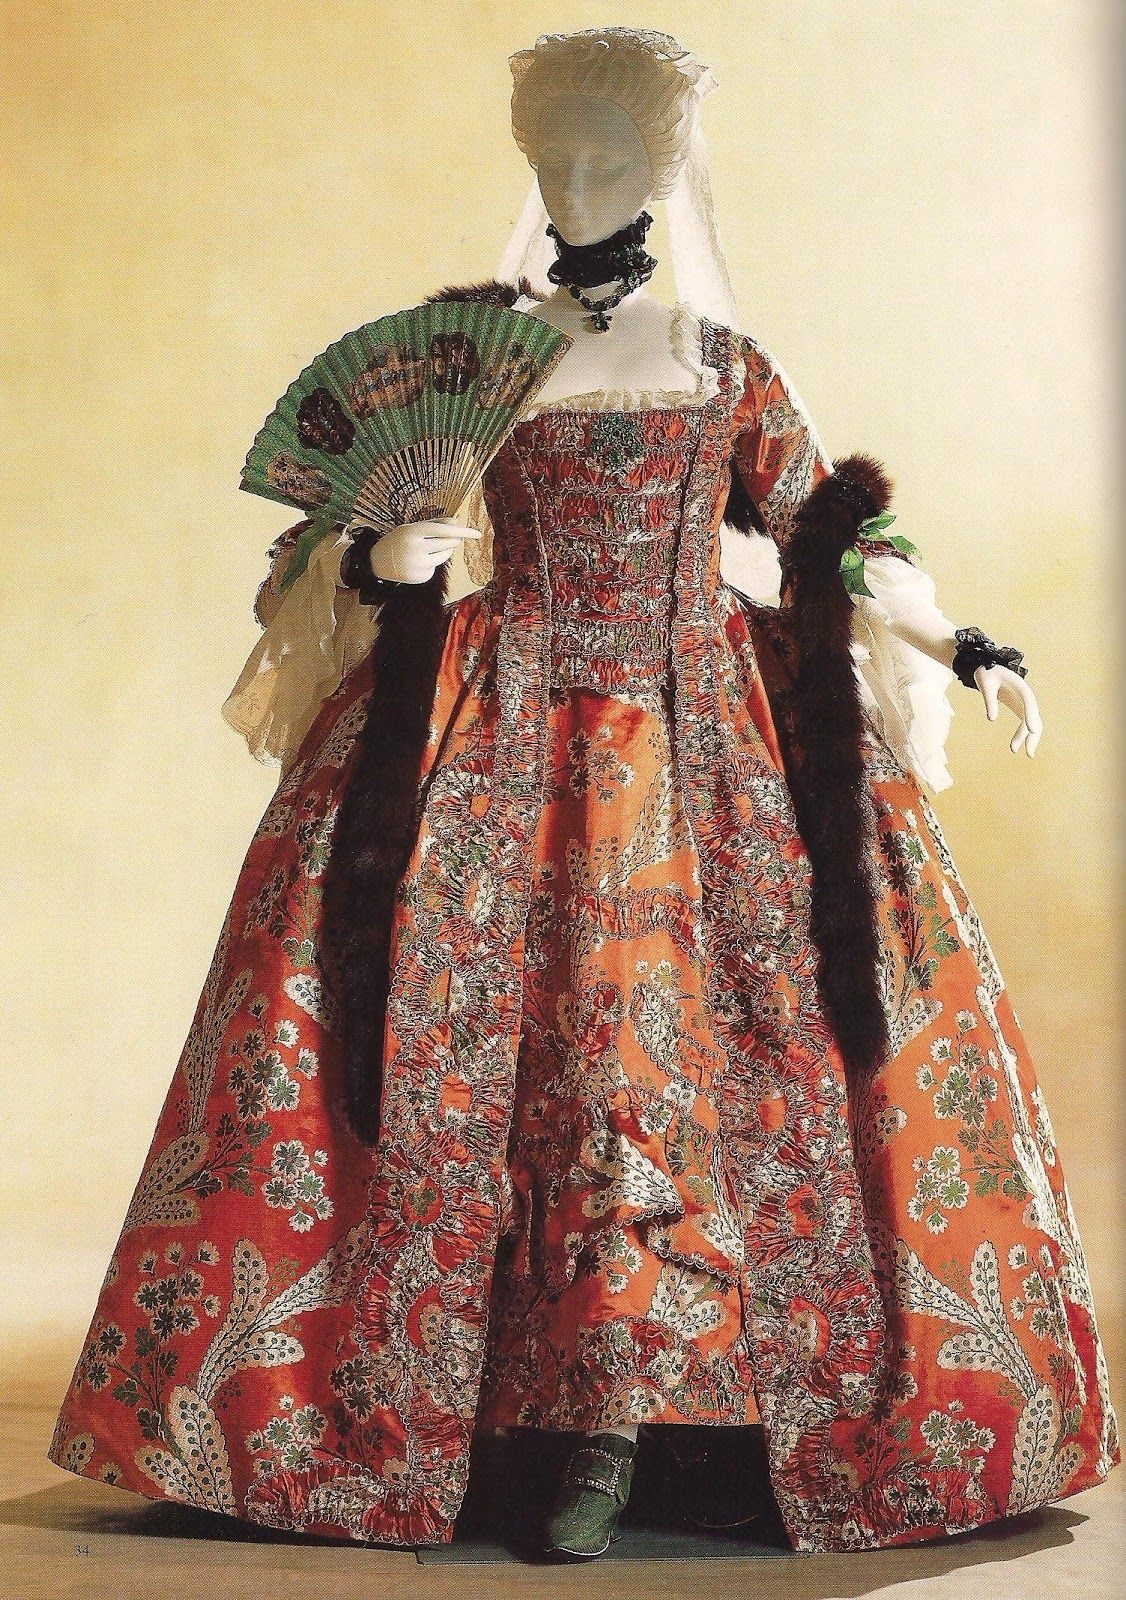 th century women fashion google search aftrs look 18th century women fashion google search